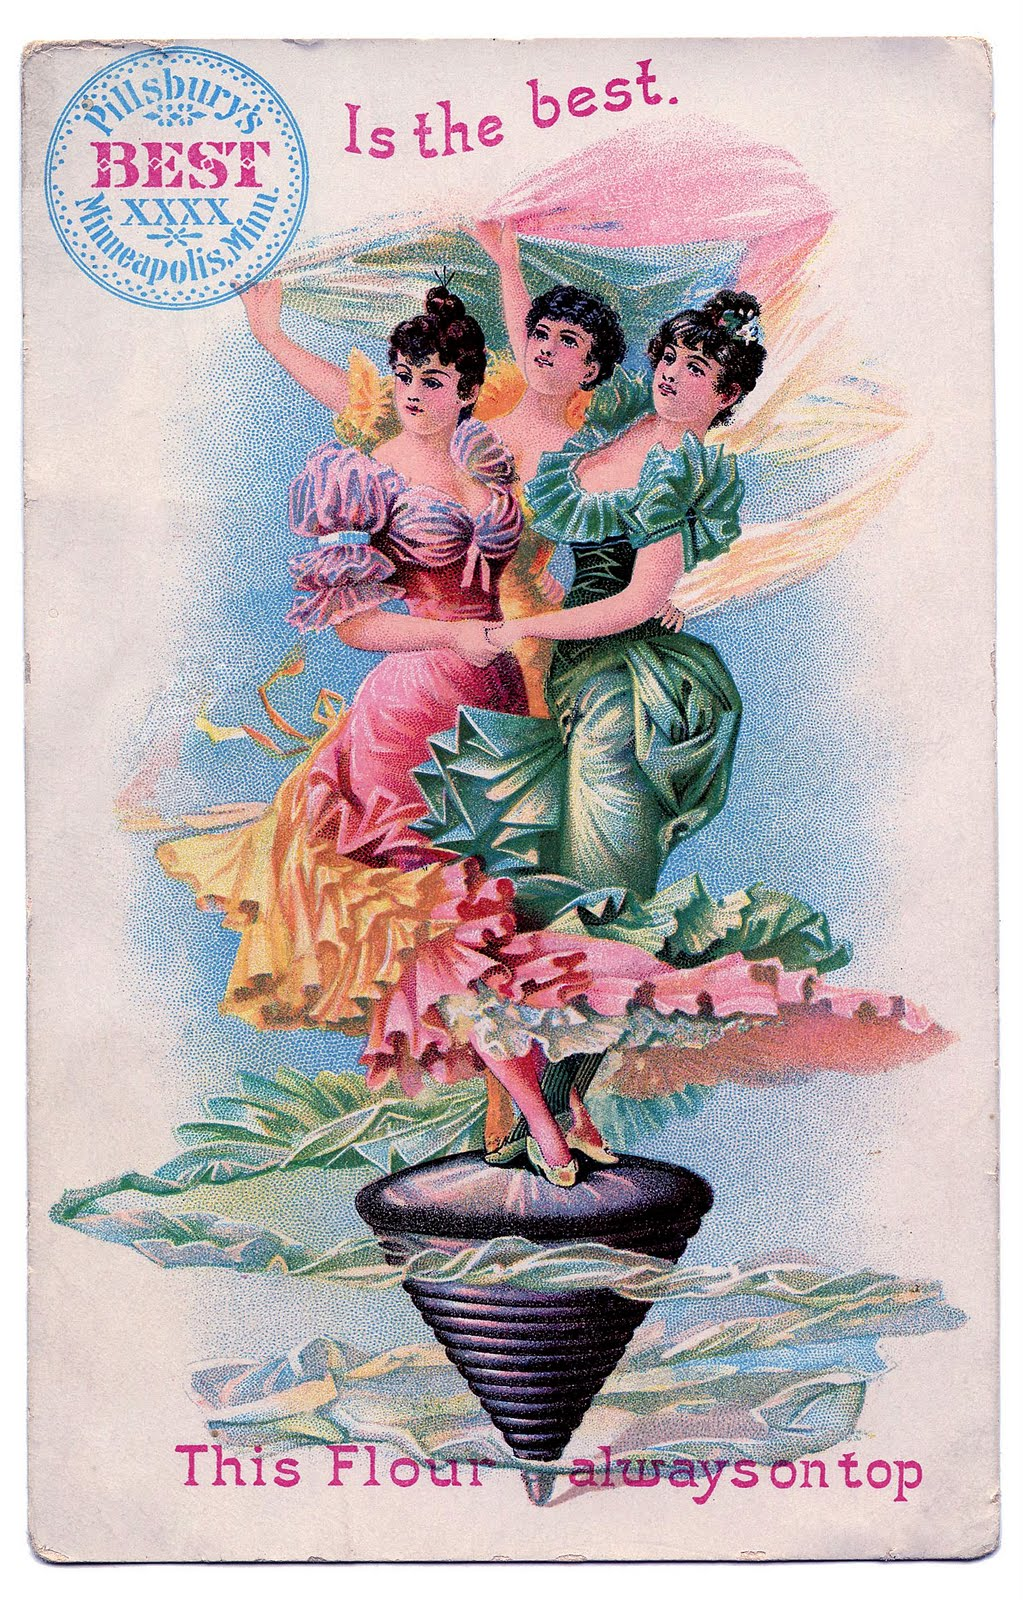 Vintage Graphic Dancing Ladies Advertising The